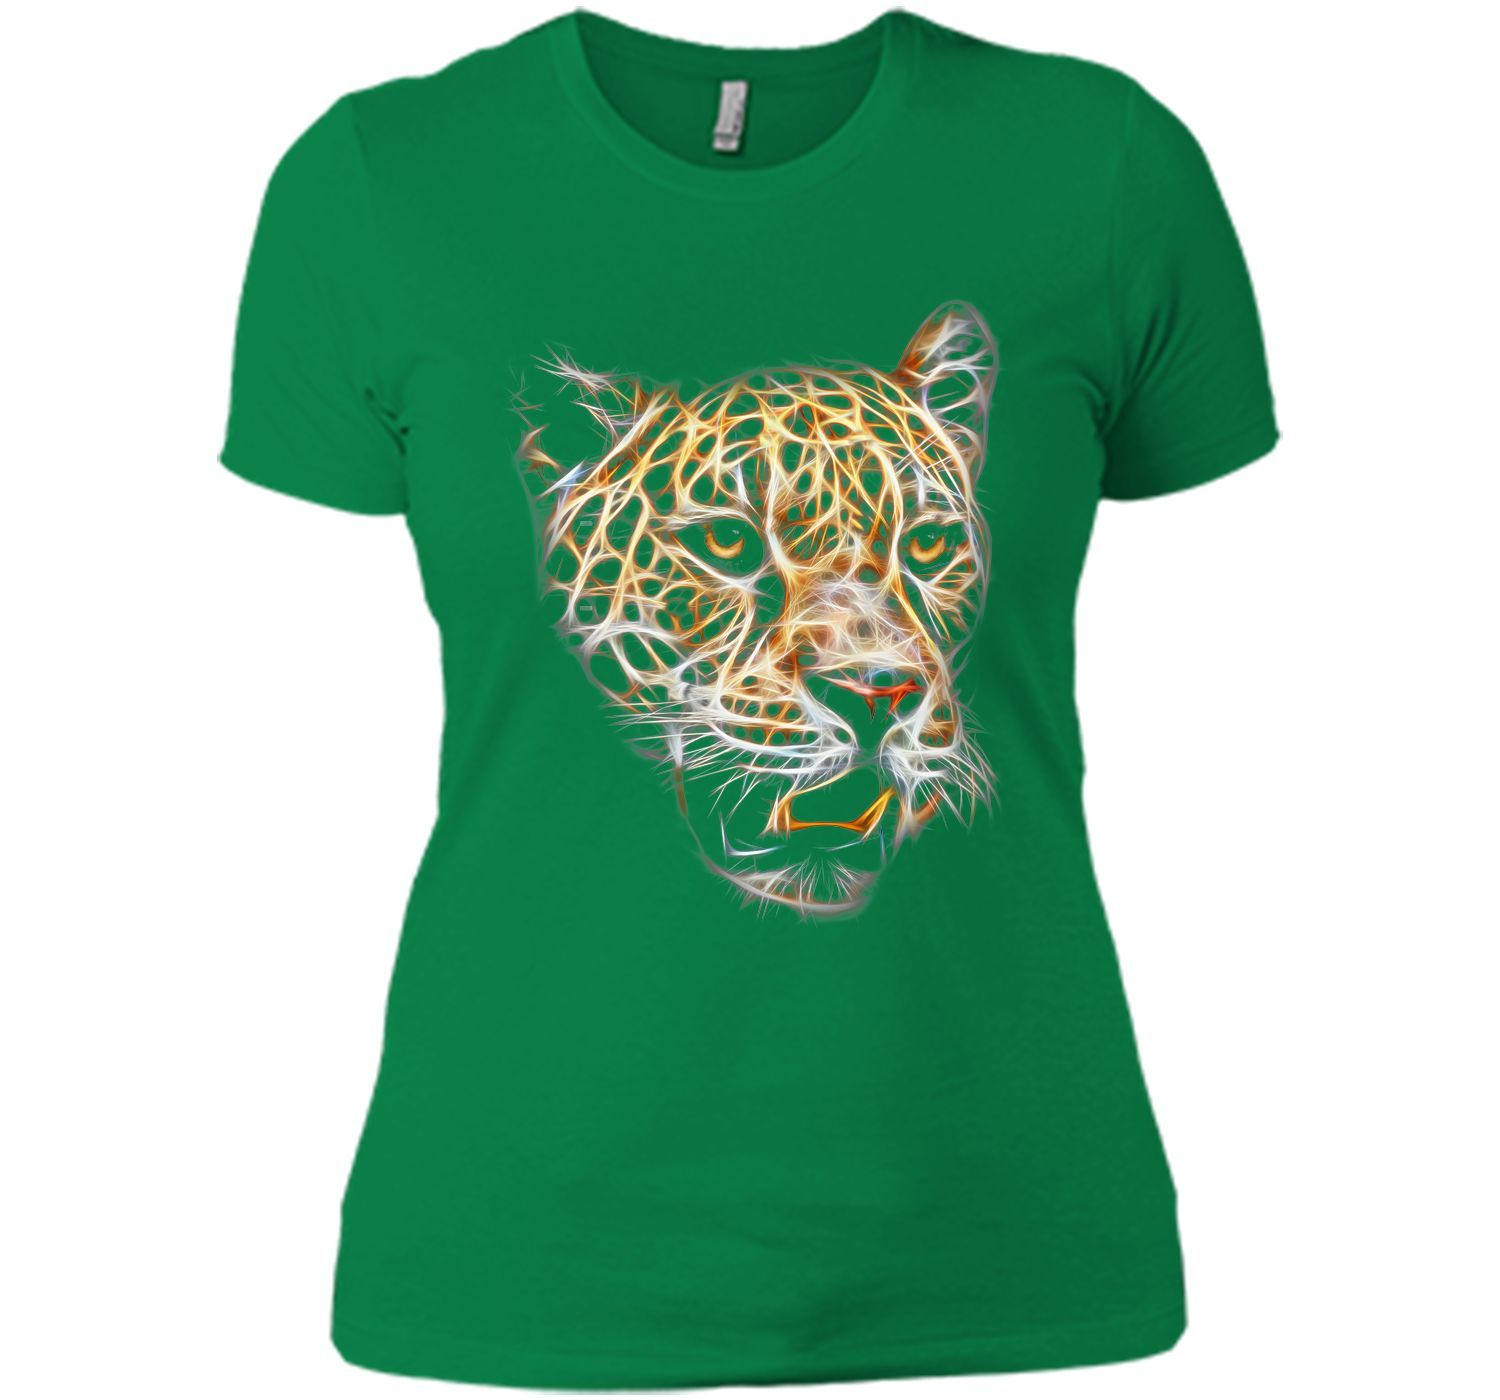 en embroidery shirts t sweaters image ready jersey us cotton with of wear and shirt crystal man jaguar to